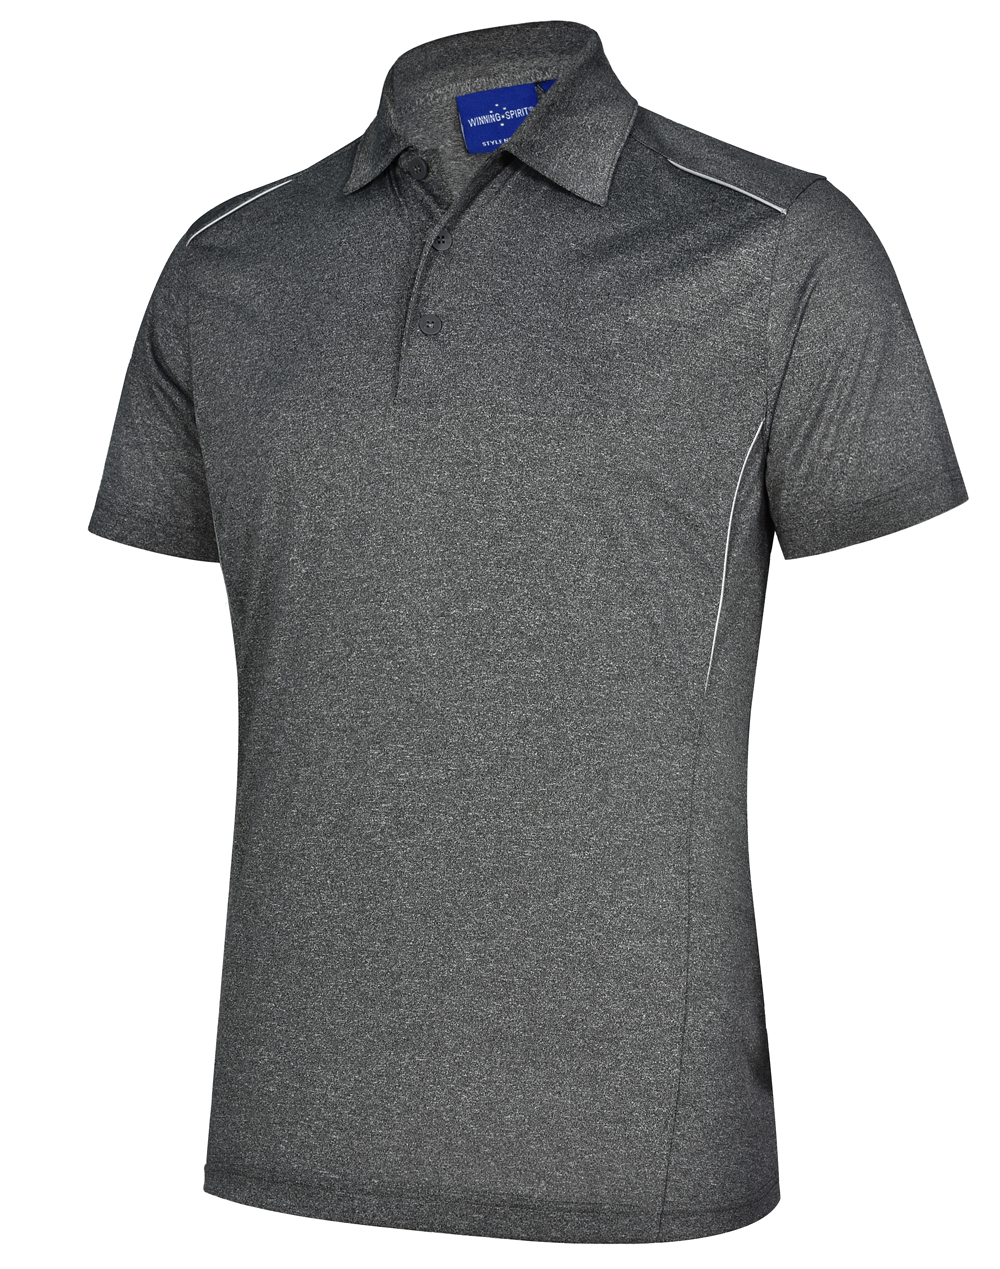 https://s3-ap-southeast-1.amazonaws.com/ws-imgs/POLOSHIRTS/PS85_Charcoal_side.jpg